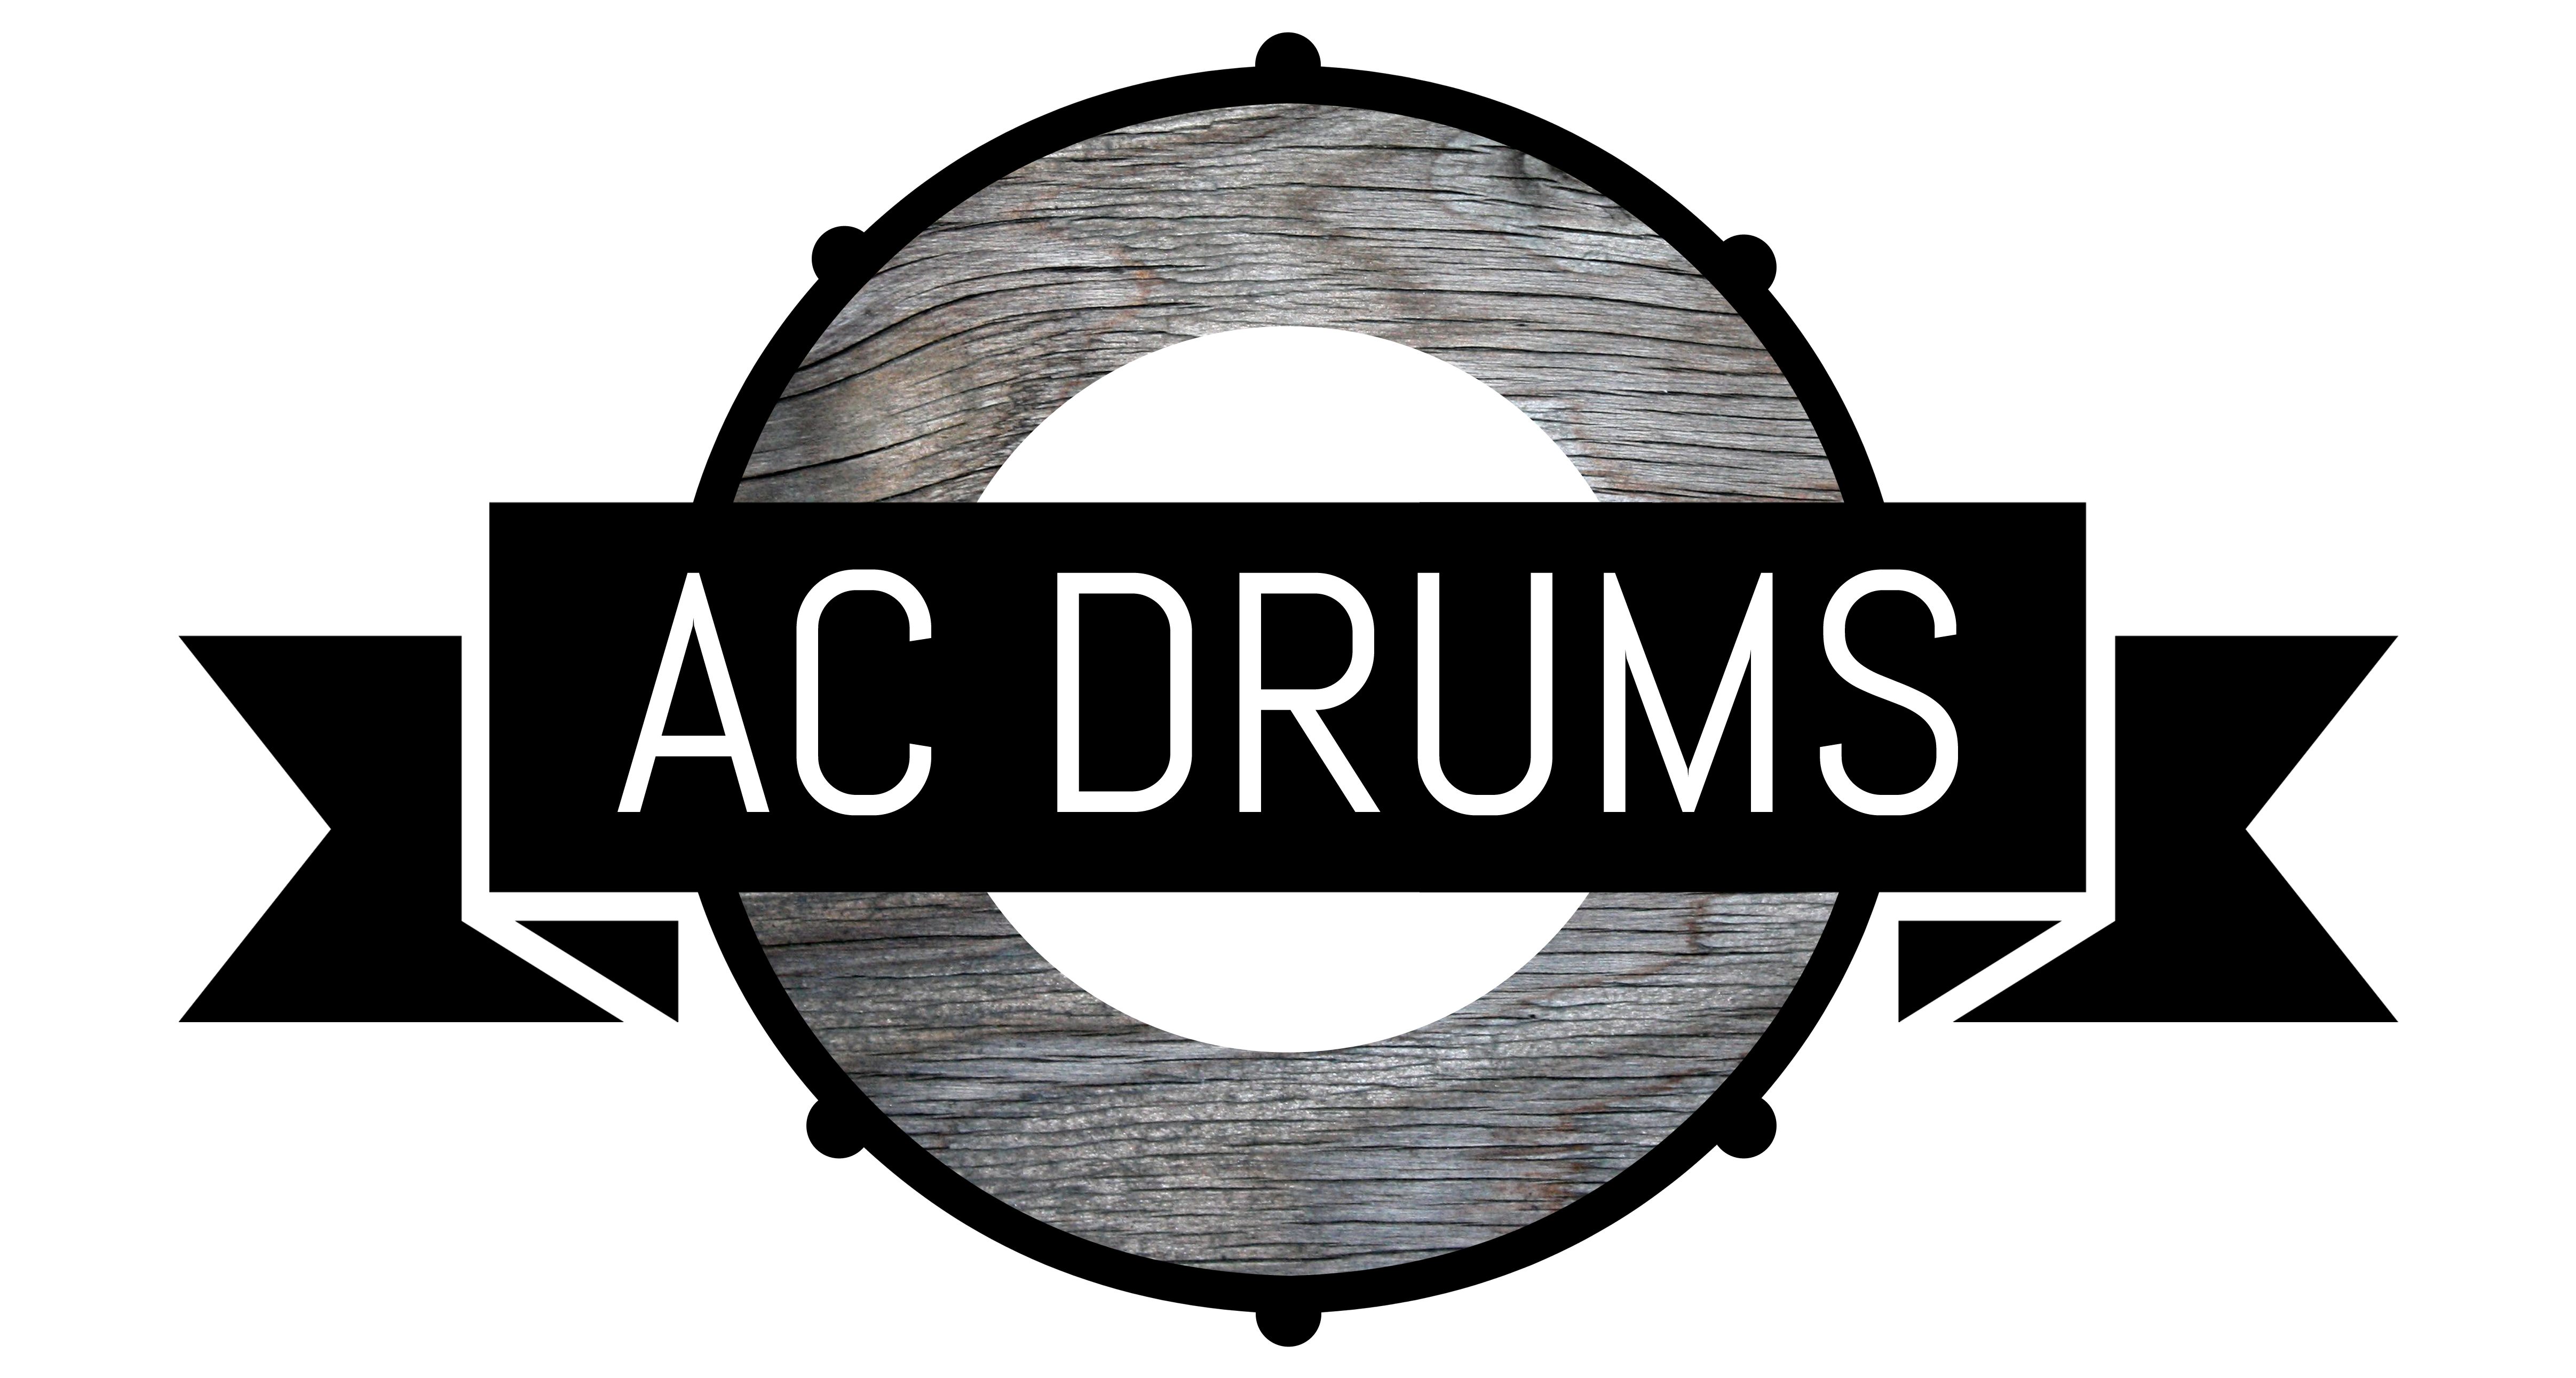 ACDRUMS